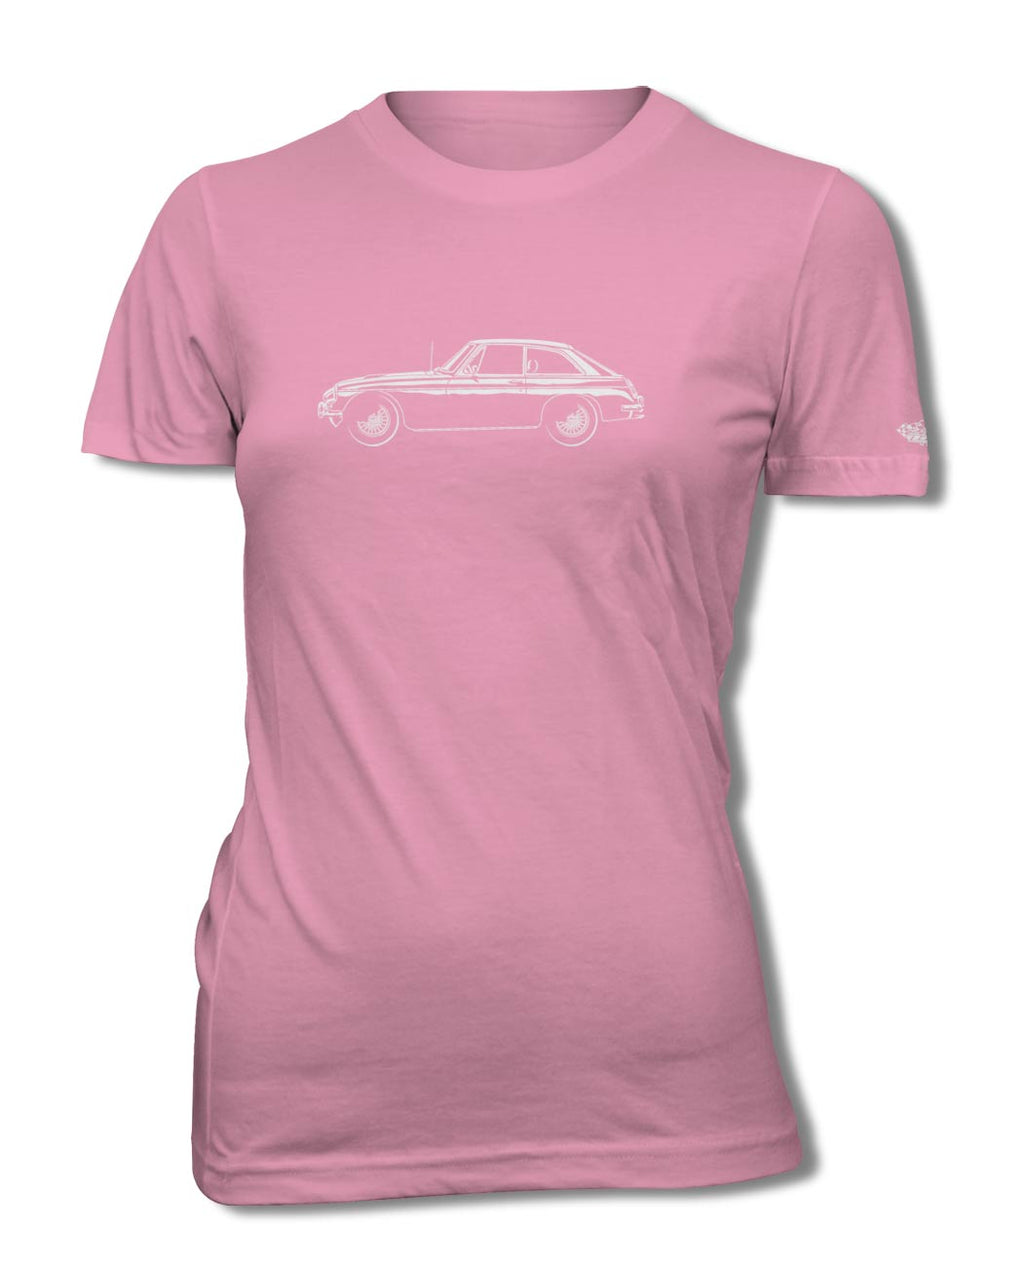 MG MGC GT Coupe T-Shirt - Women - Side View